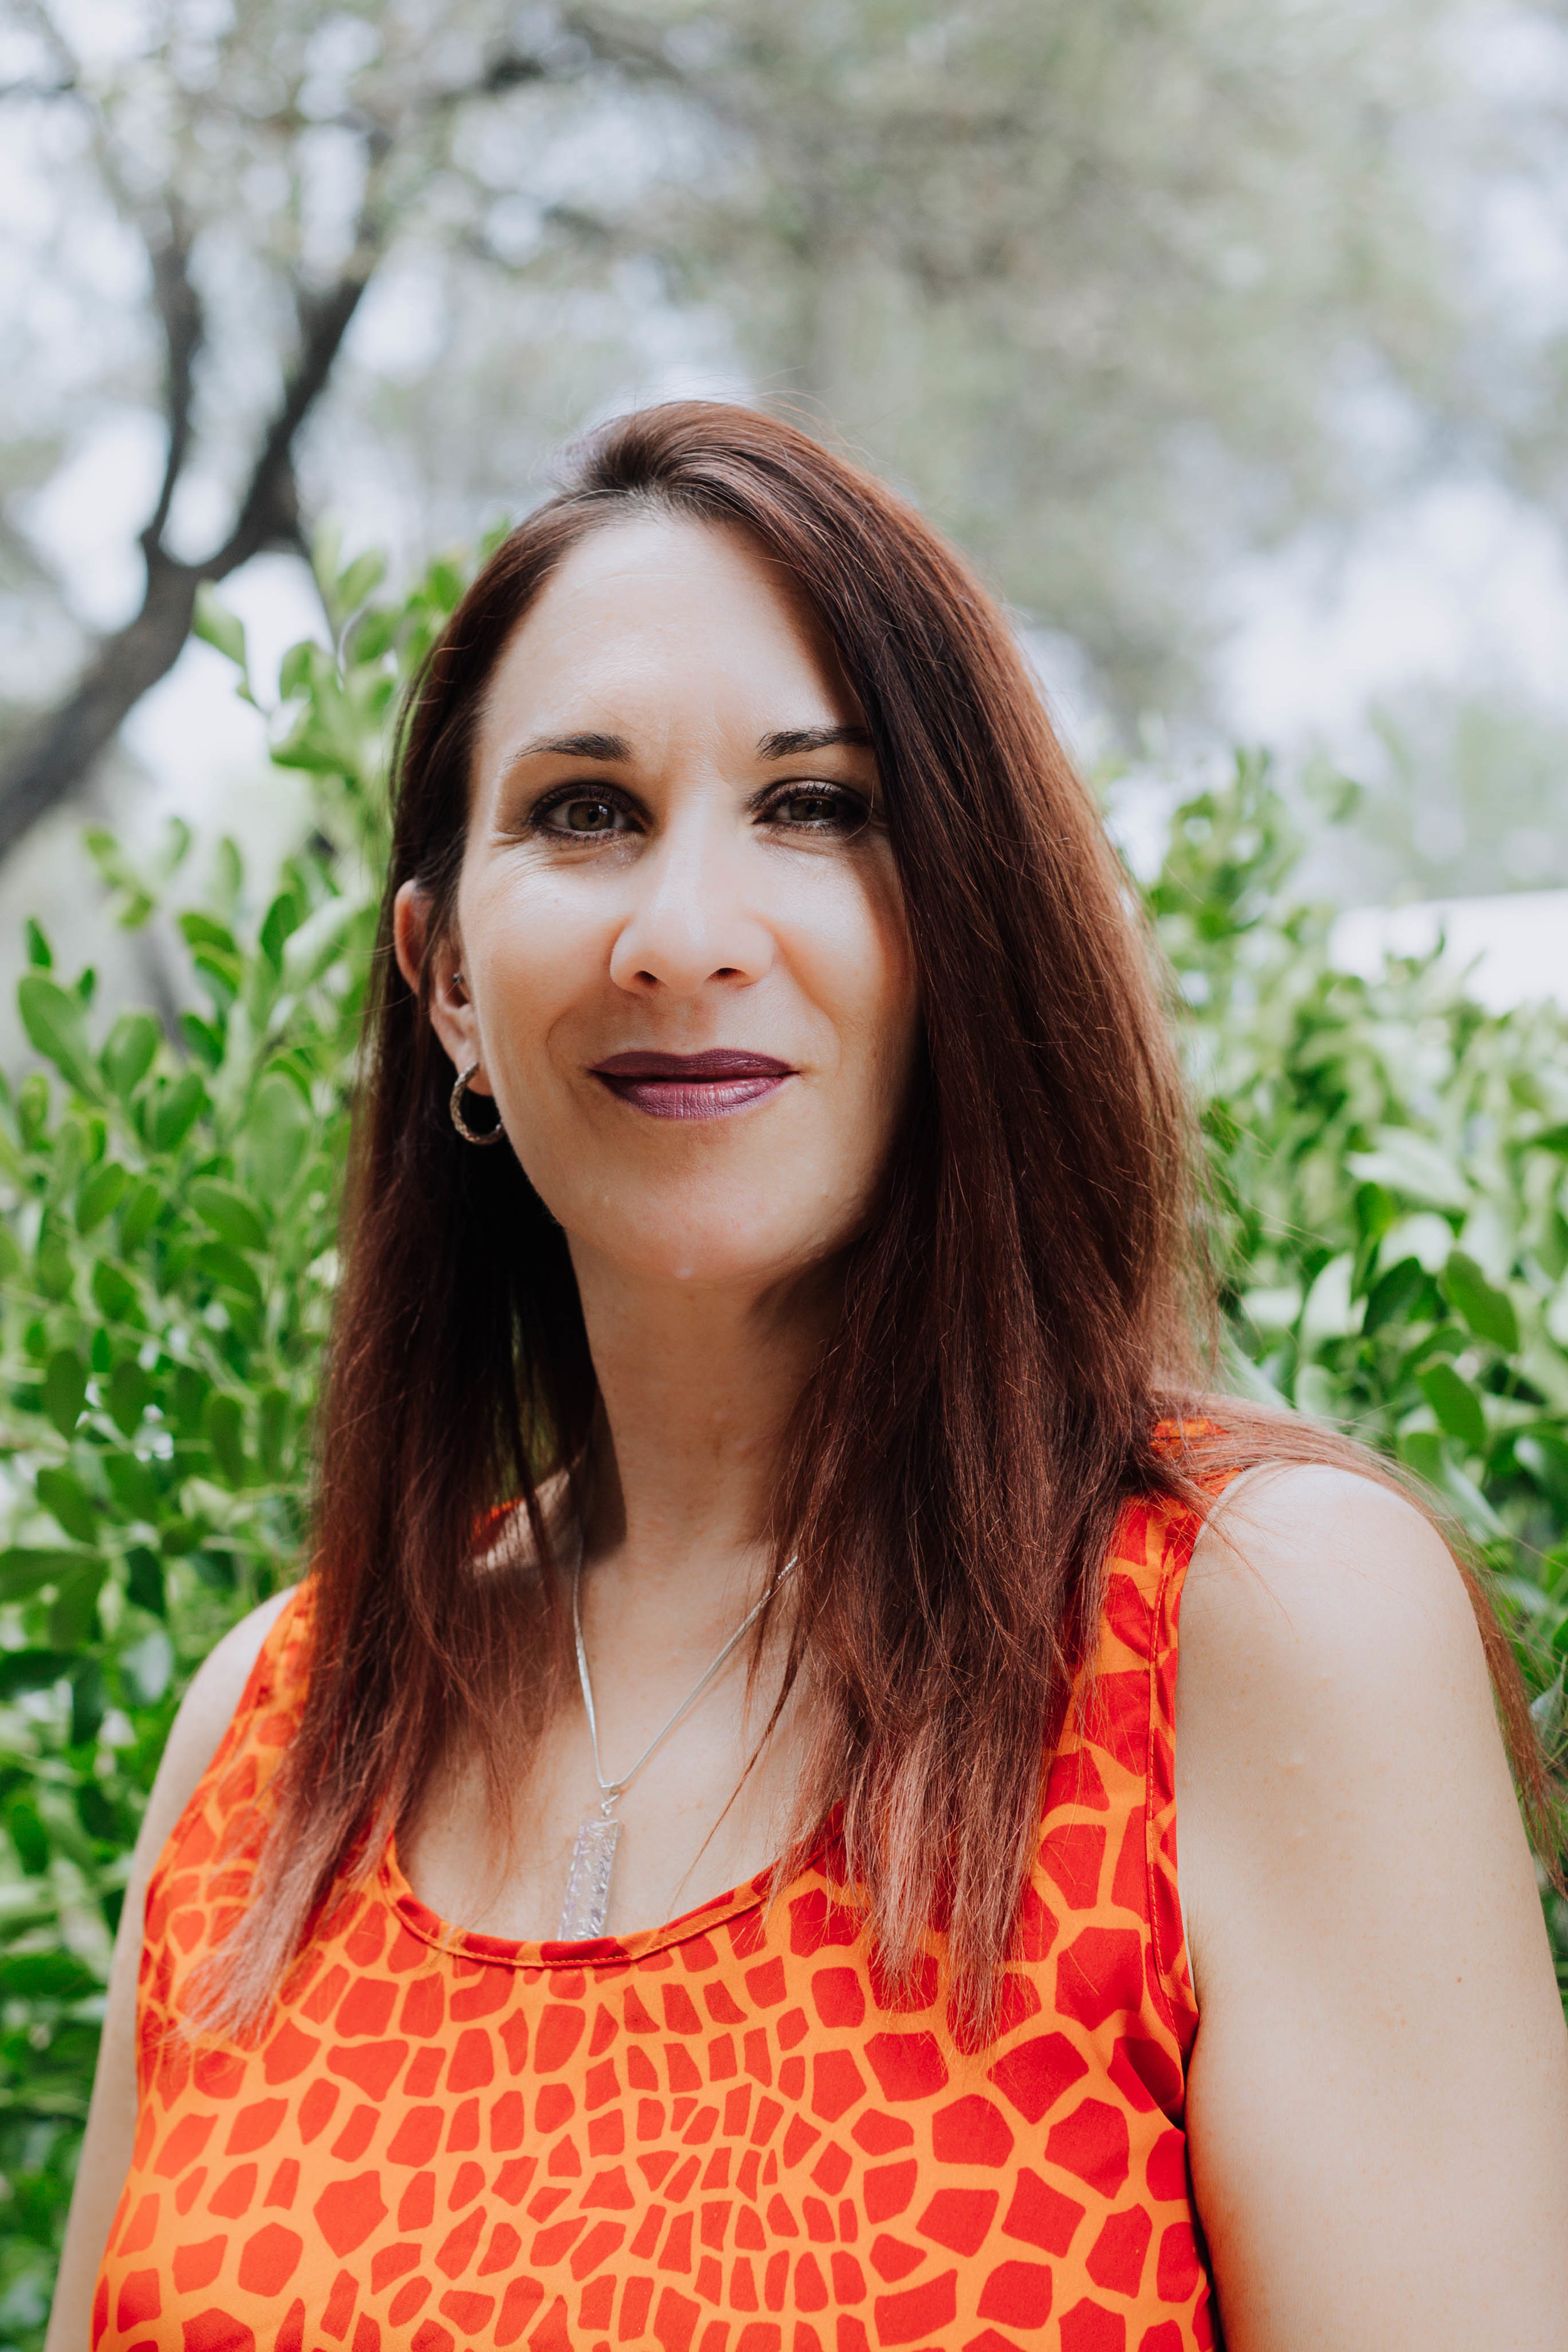 Tania Dutari - Tania joined Steven Phillips and Associates towards the end of 2016. She currently assists clients on the phone and at the front desk. She seeks to meet the needs of every individual she speaks to.Email: tania@stevephillipscpa.com